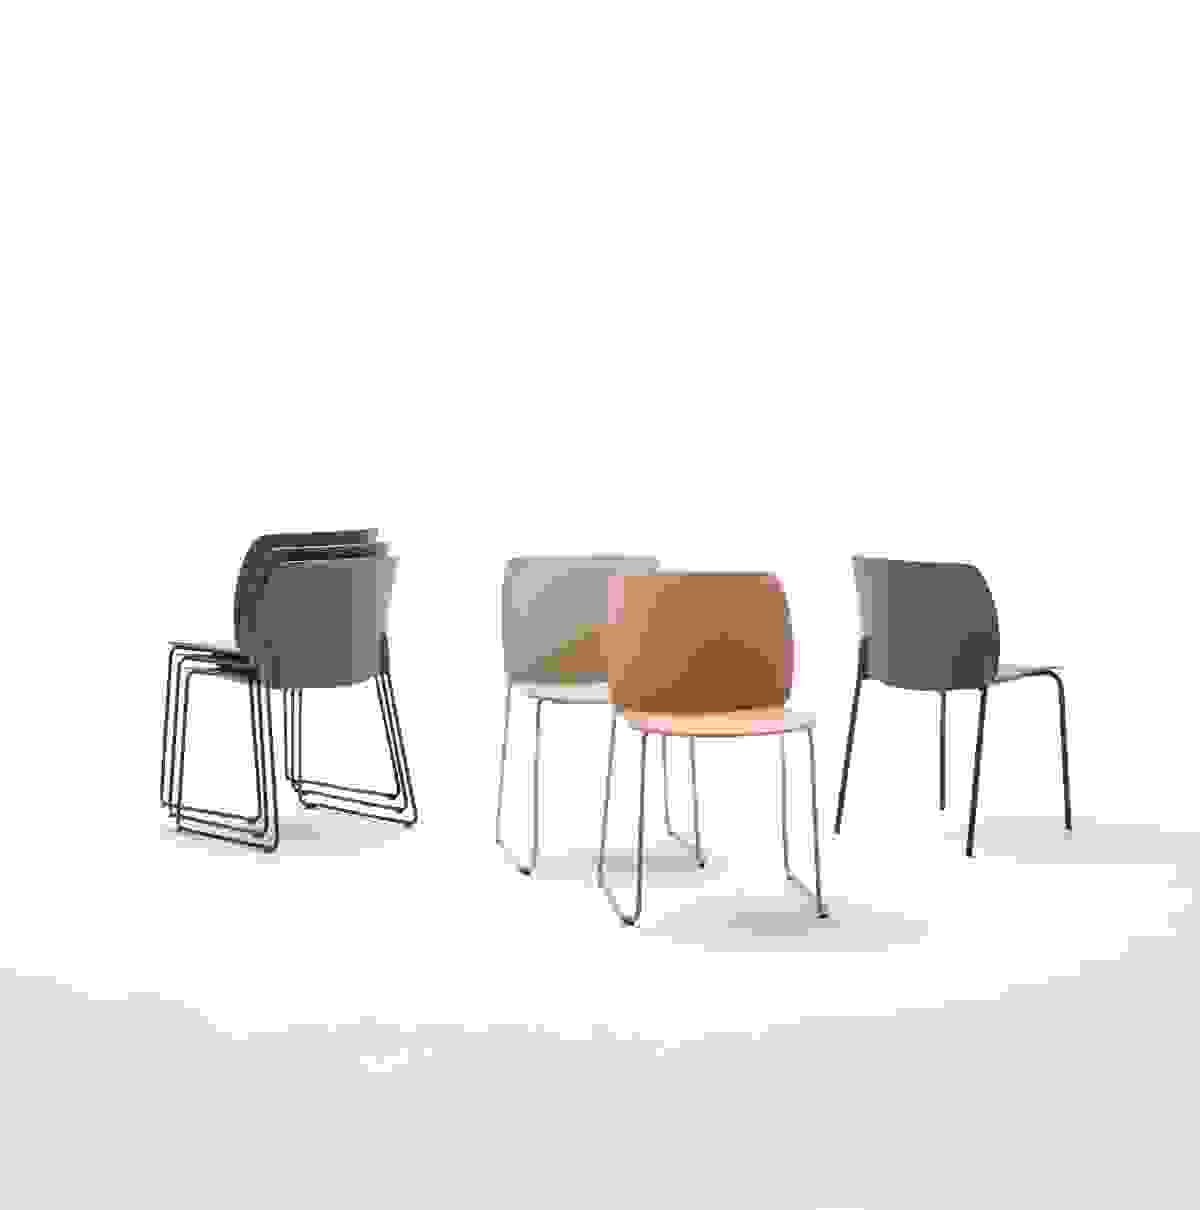 inclass-aryn-max-chair-02.jpg